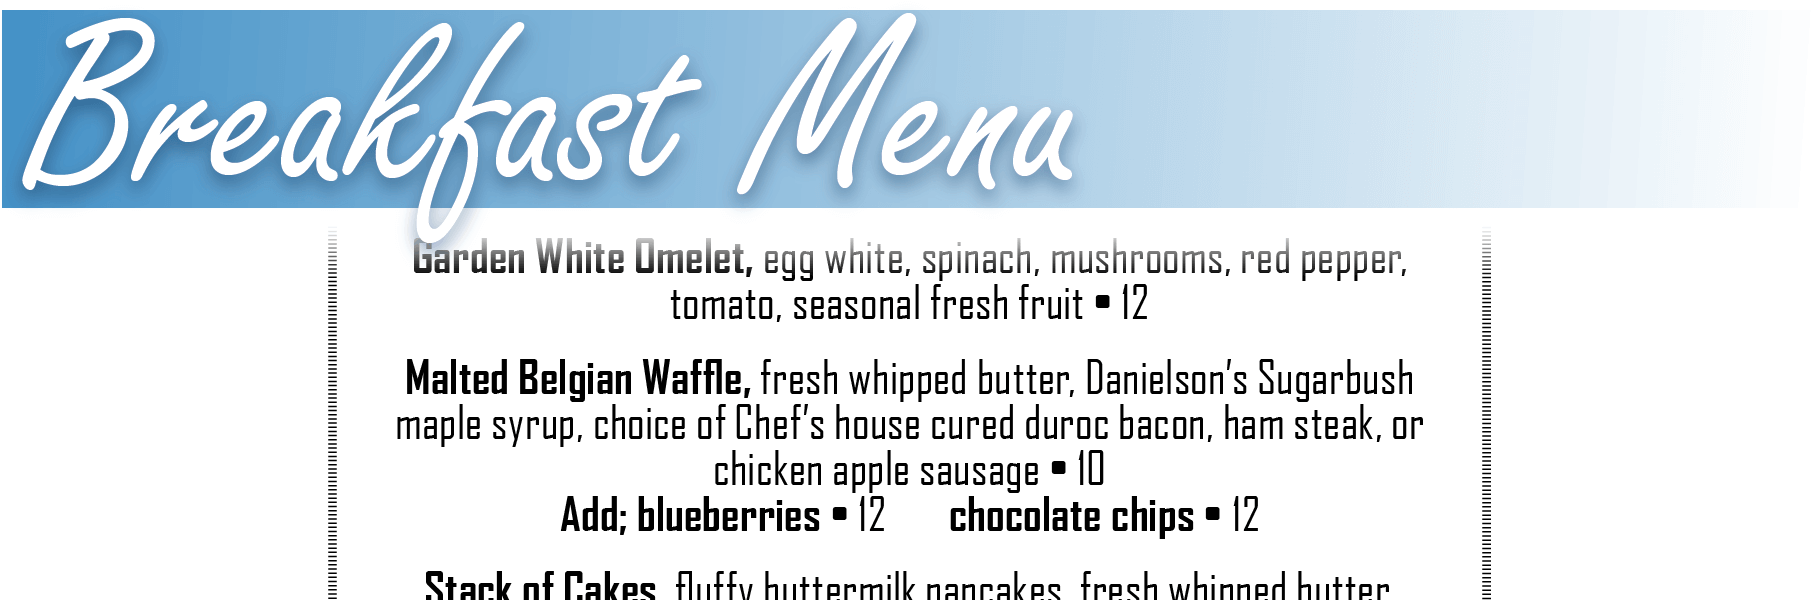 Breakfast Menu Header